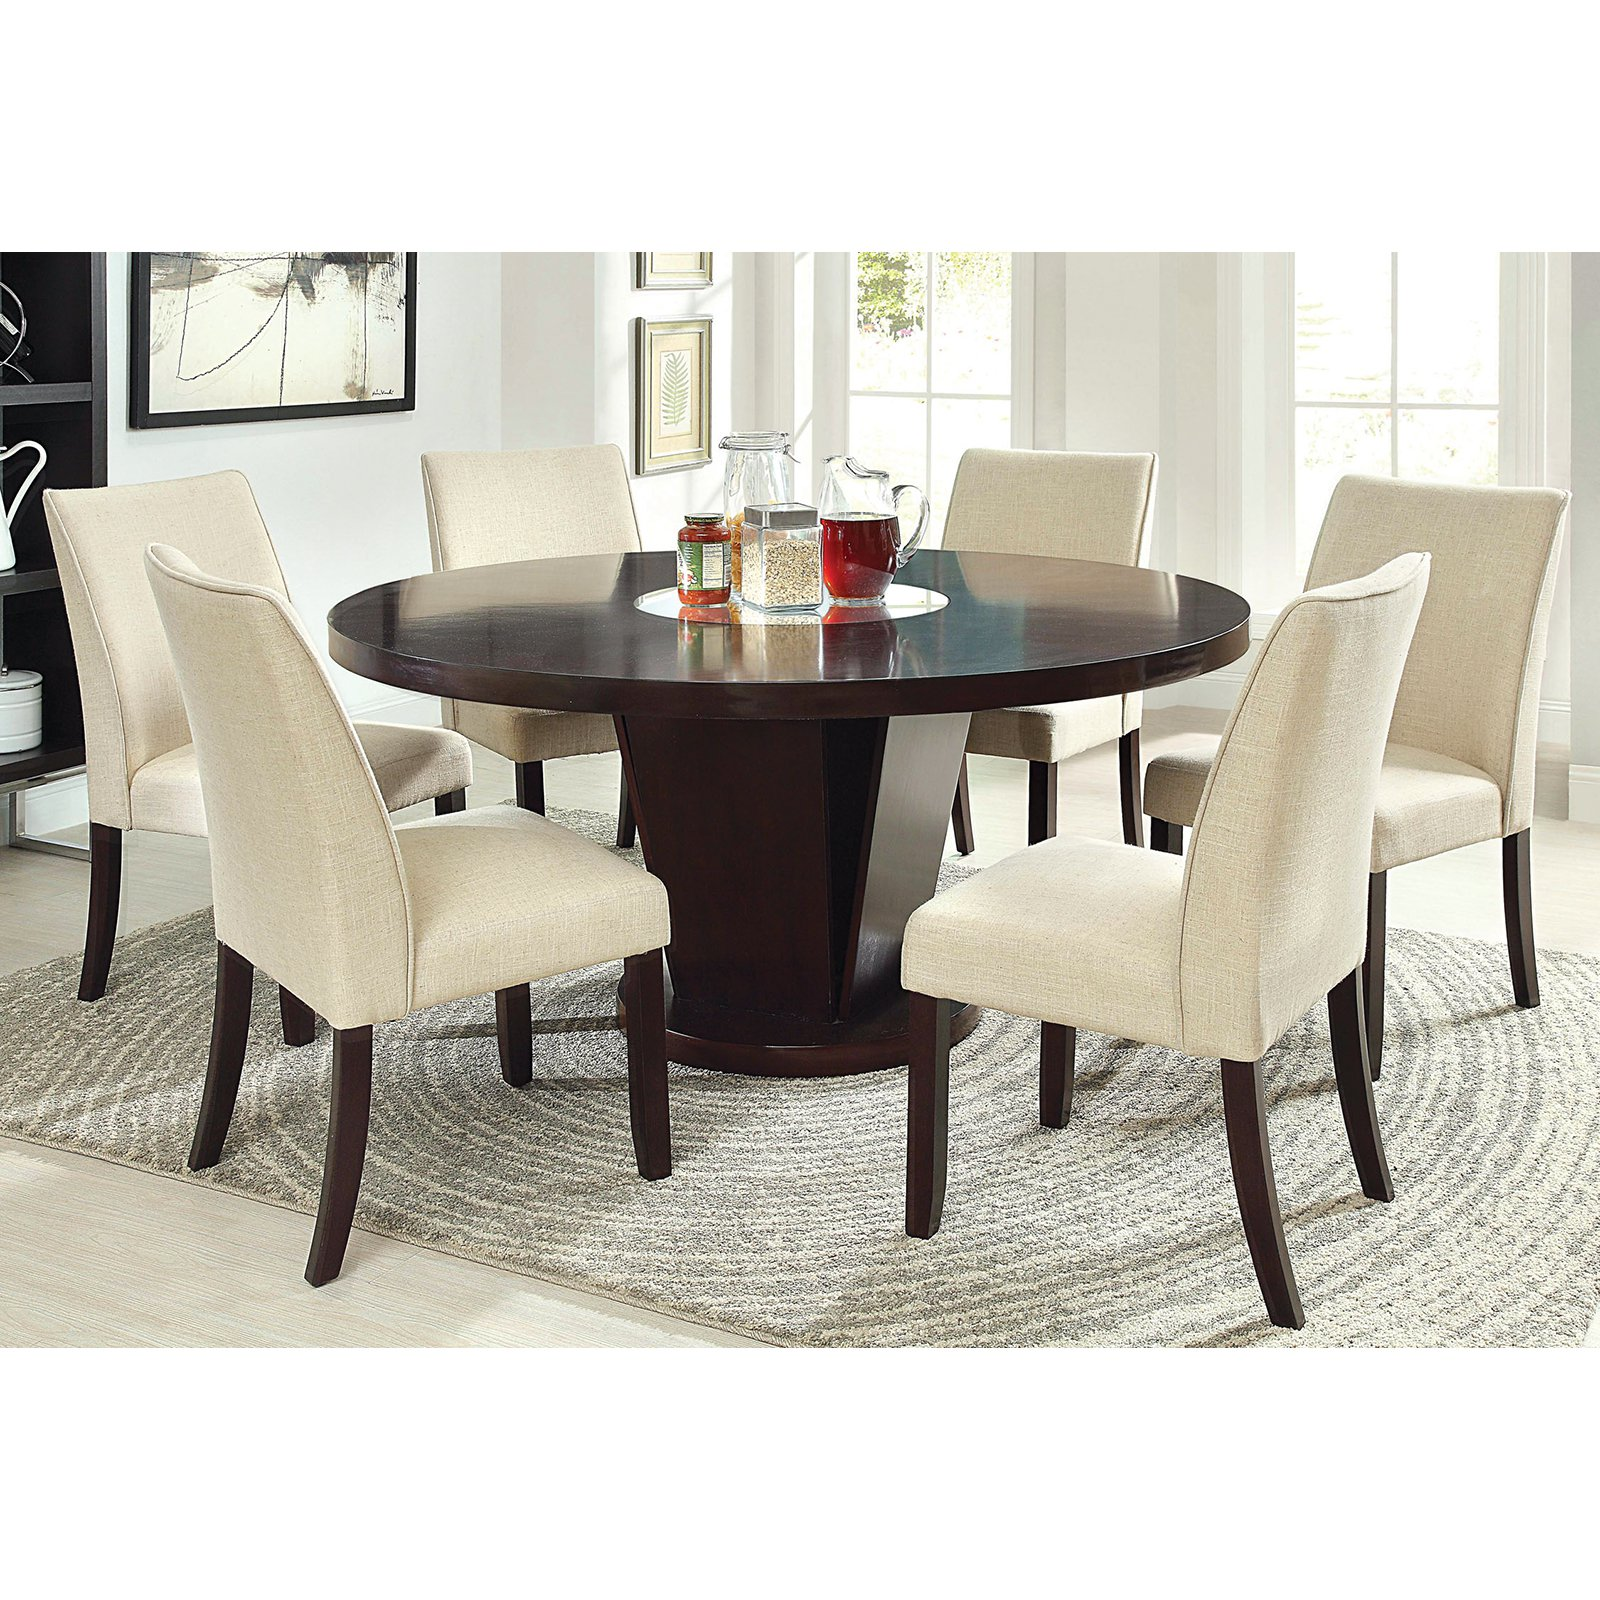 Furniture Of America Vessice 7 Piece Round Pedestal Dining Set Espresso